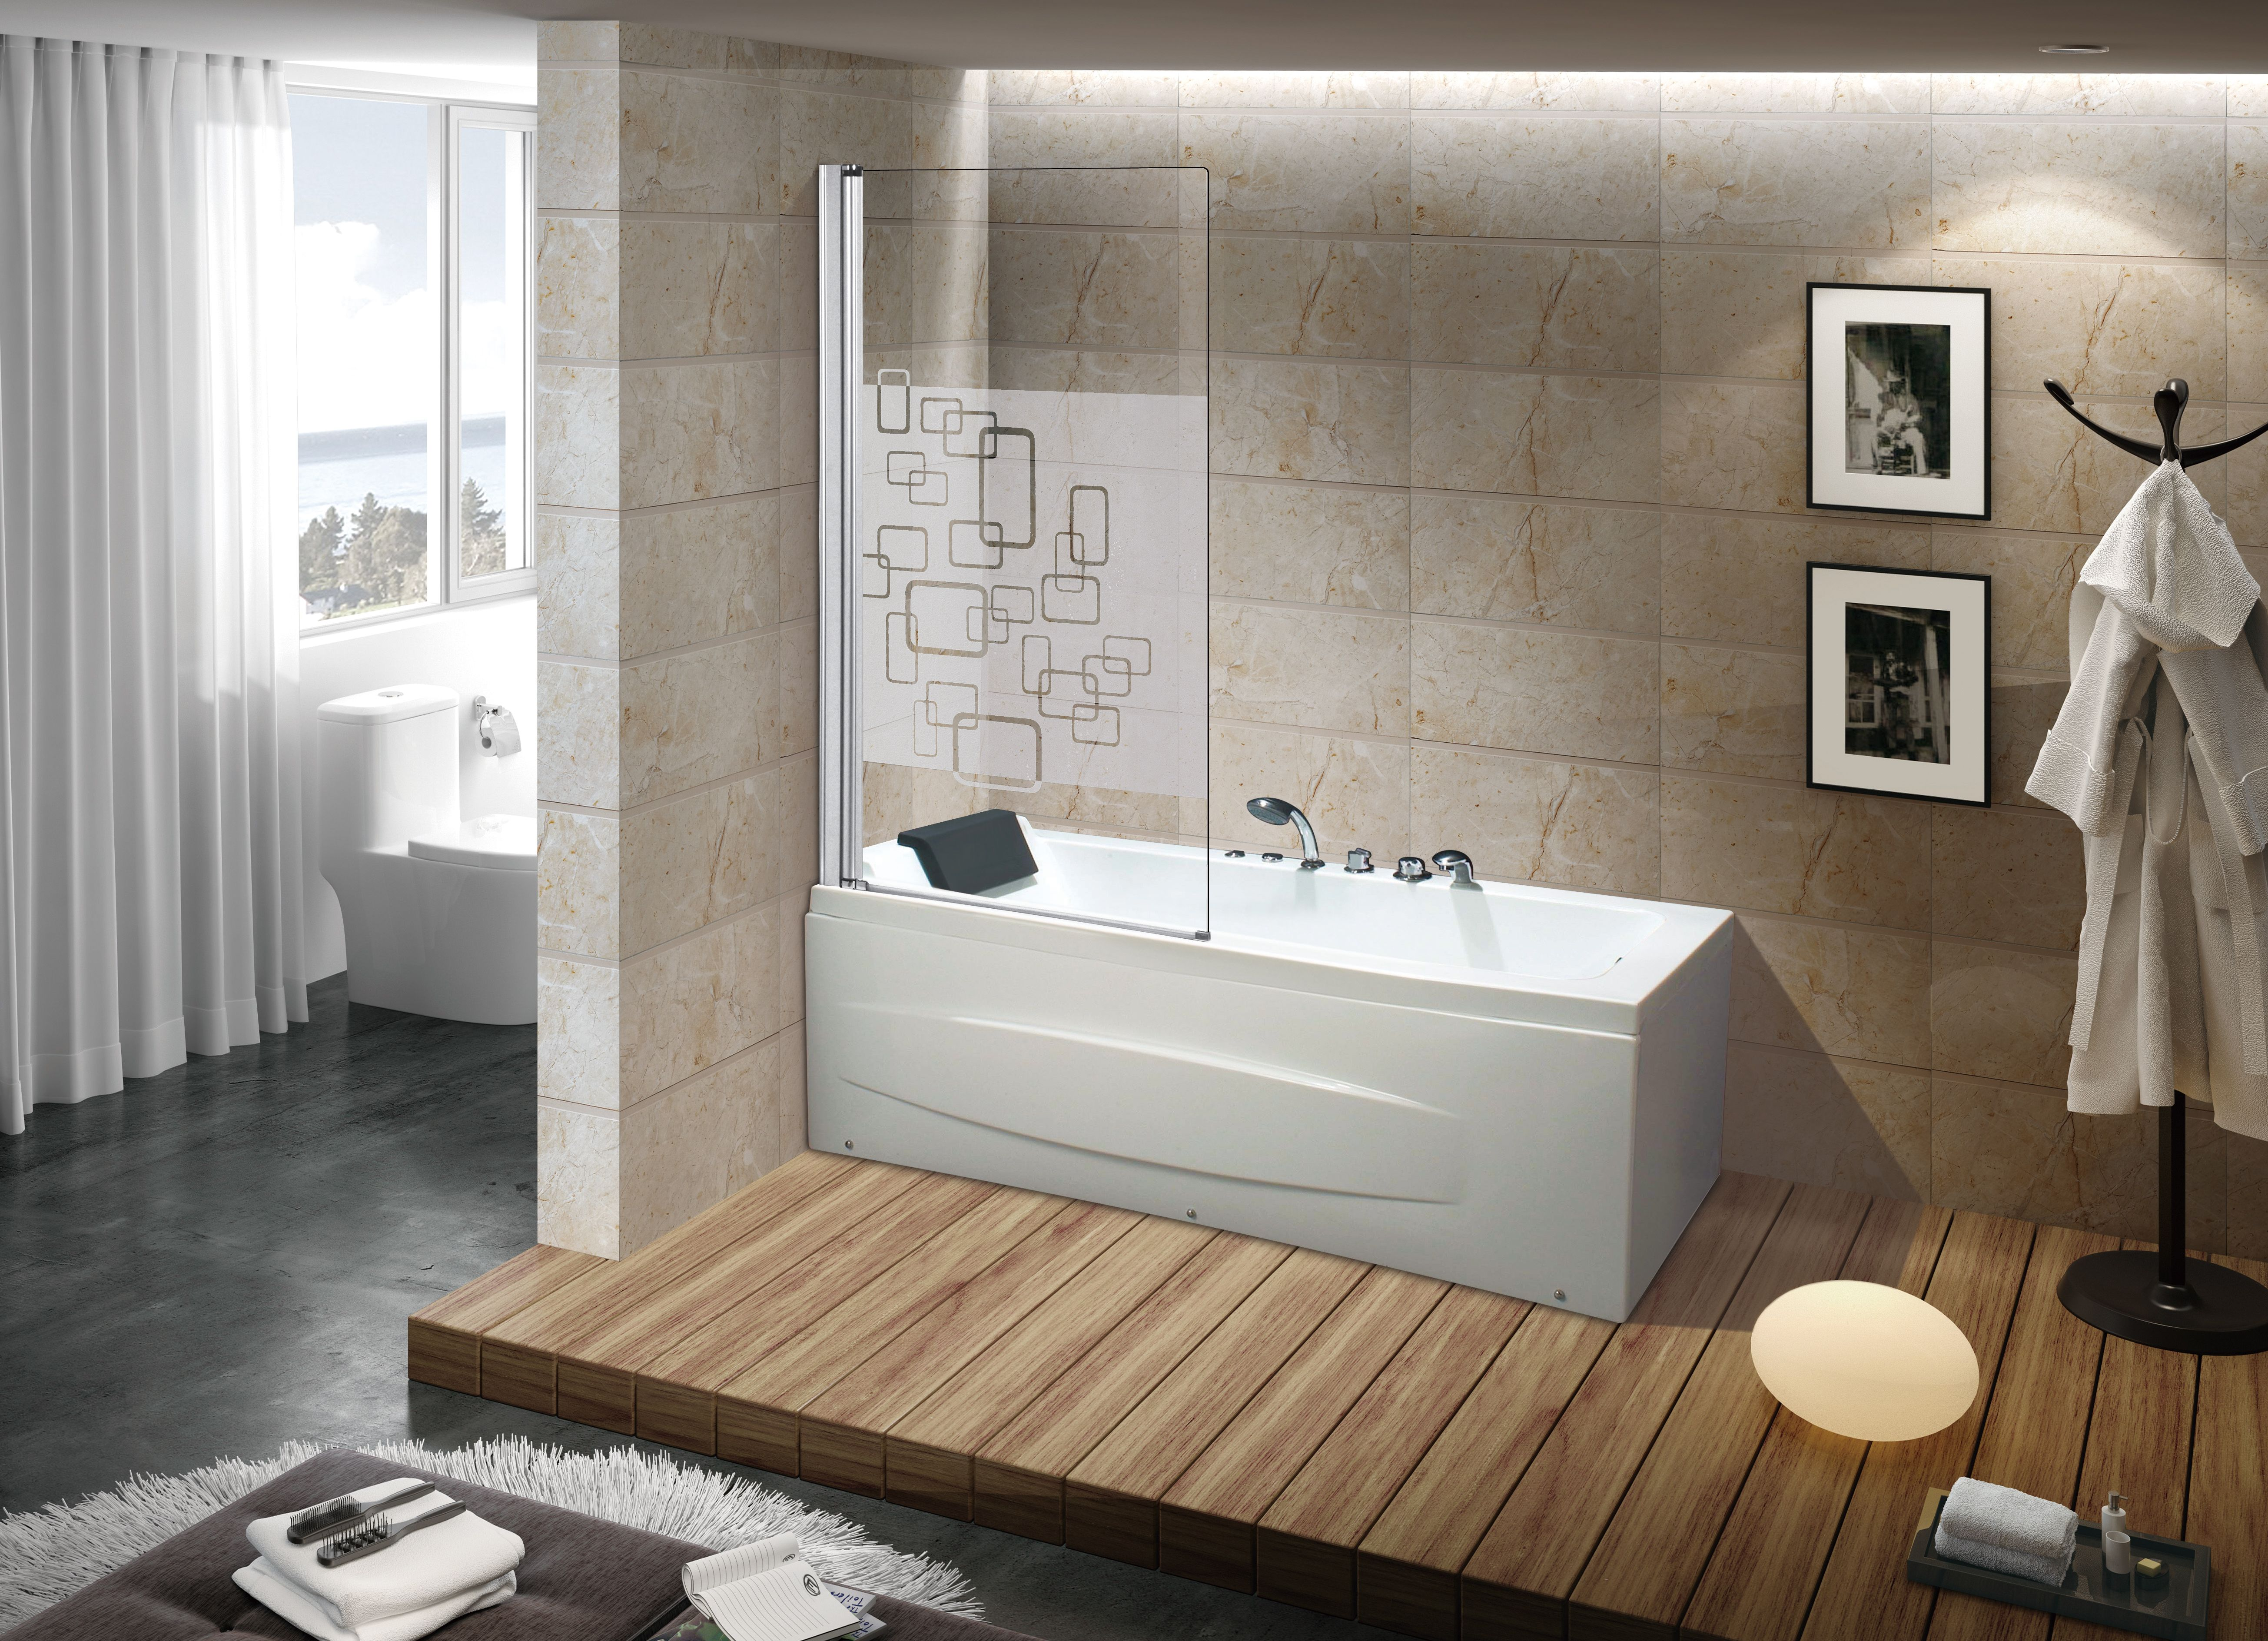 Bathtub Shower Screen N105 Bathroom Sink Cabinet Modern